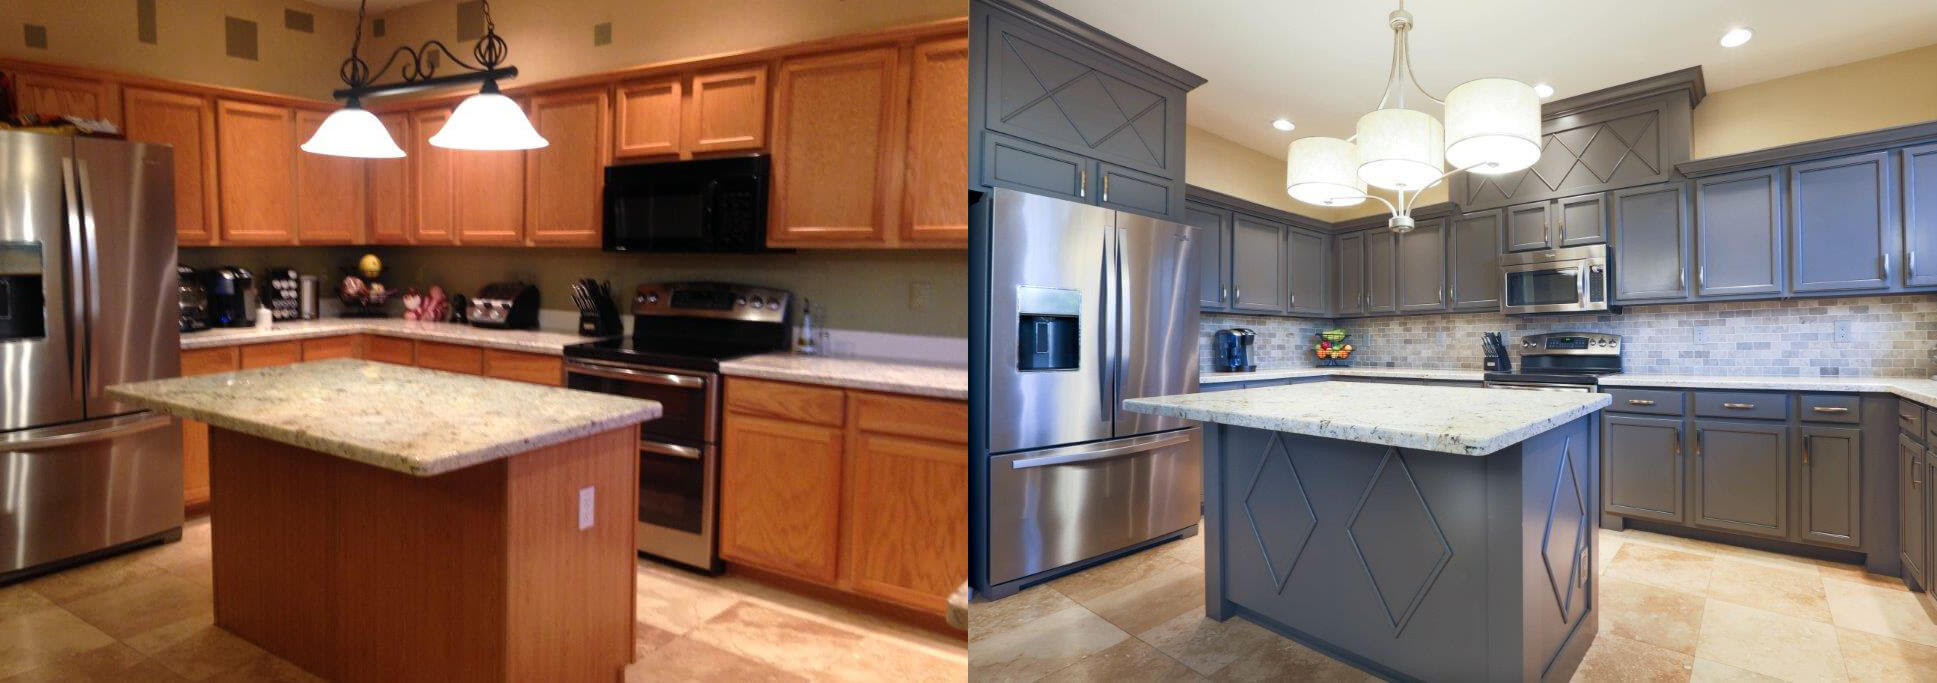 Cabinet Refacing | Marblecast Of Michigan